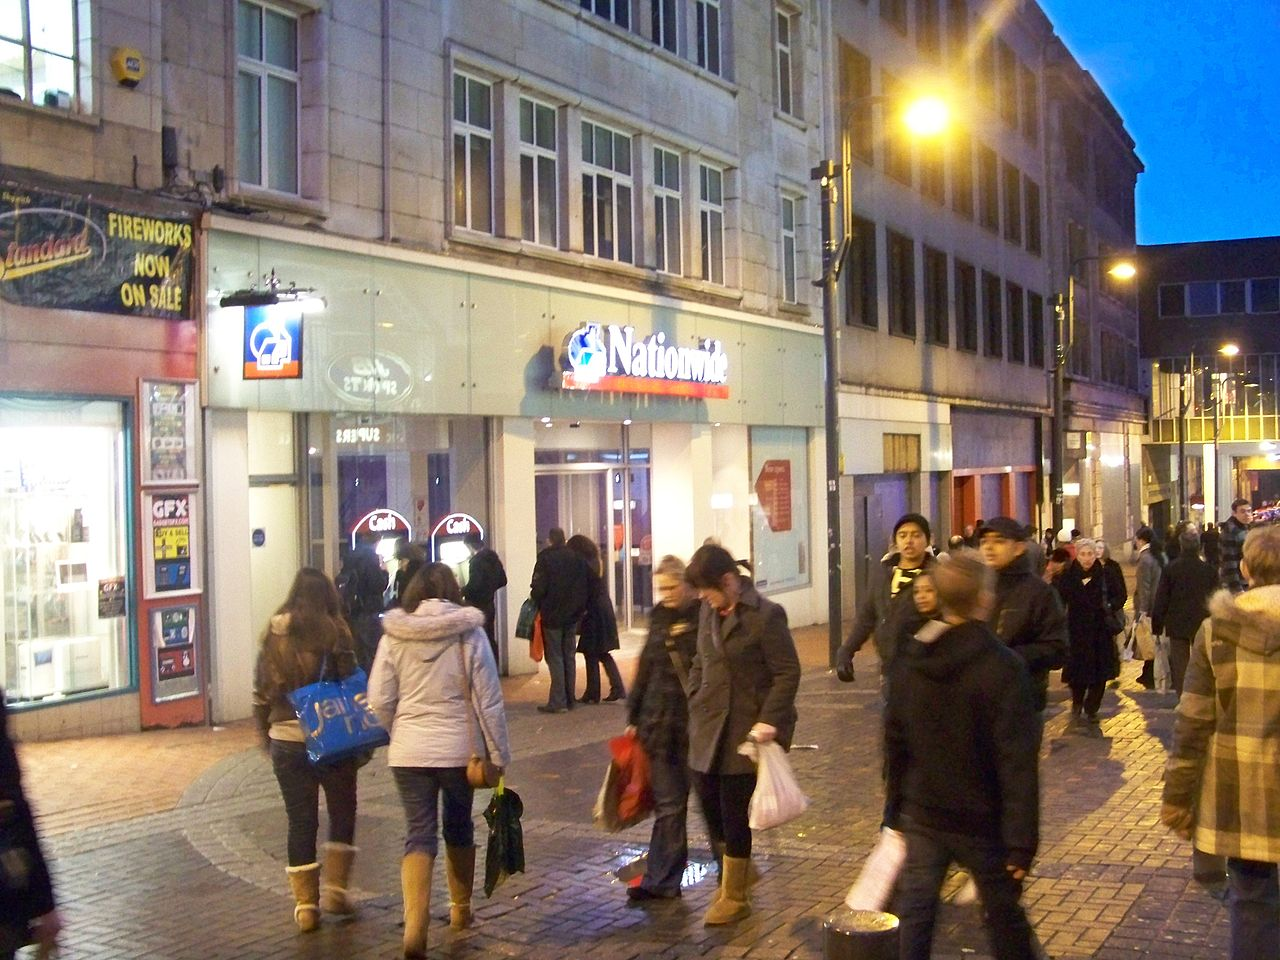 Nationwide Building Society Travel Insurance Reviews